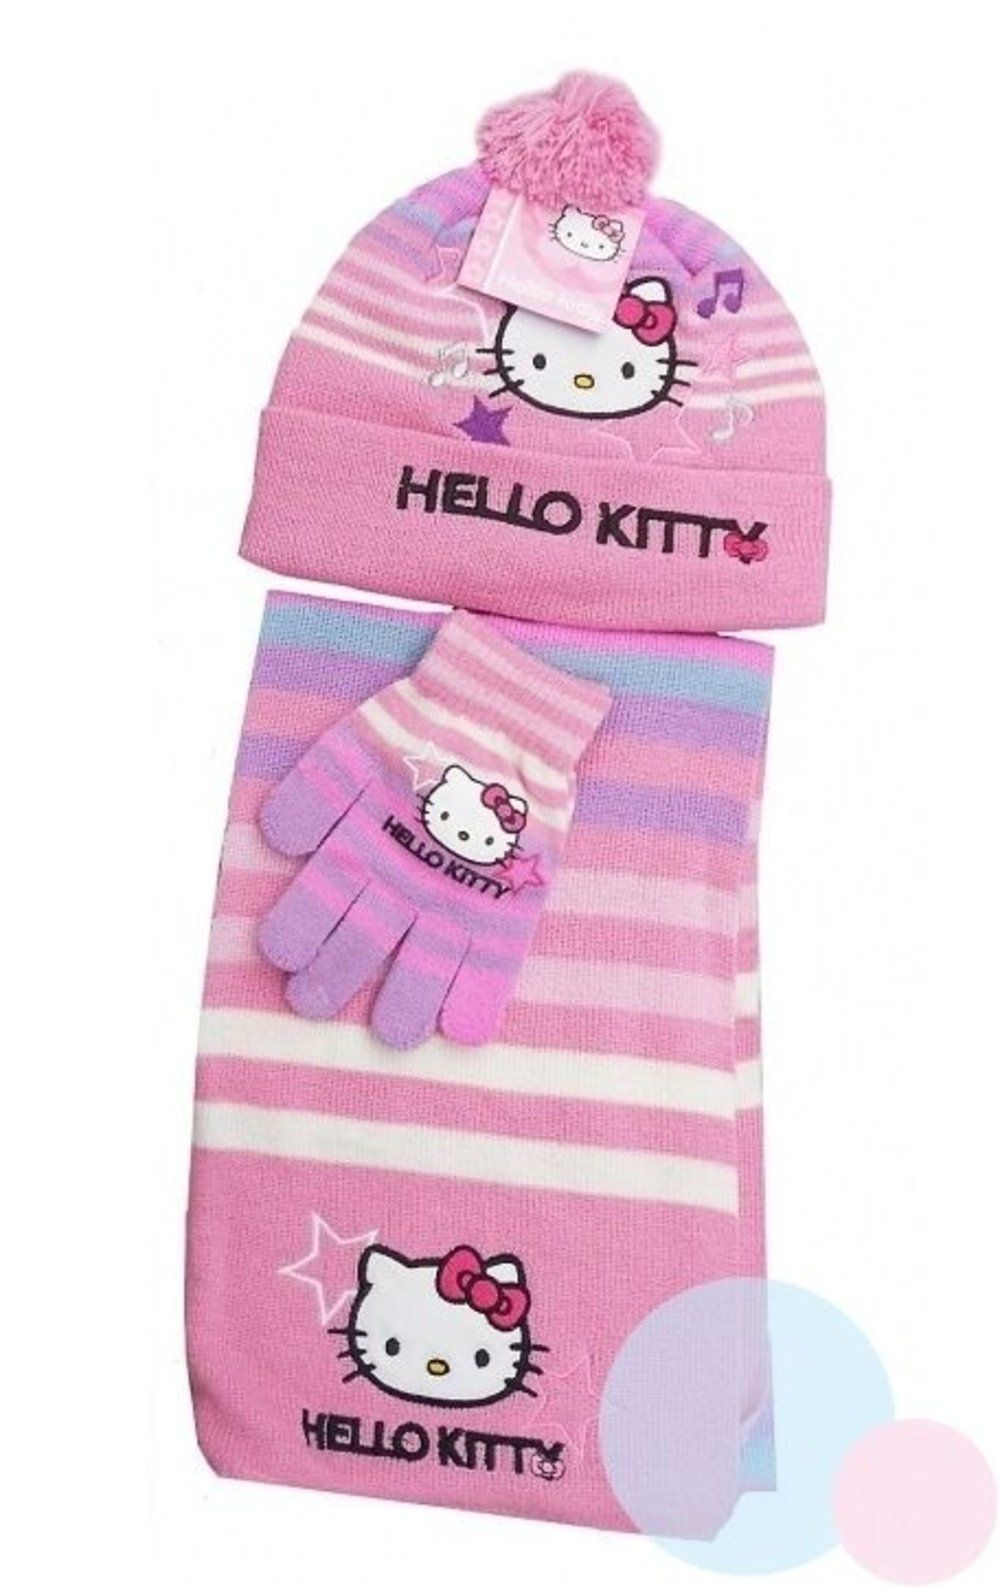 278a139ed48 Hello kitty Hat Scarf   Glove sets for girls HM4045 (54 CM